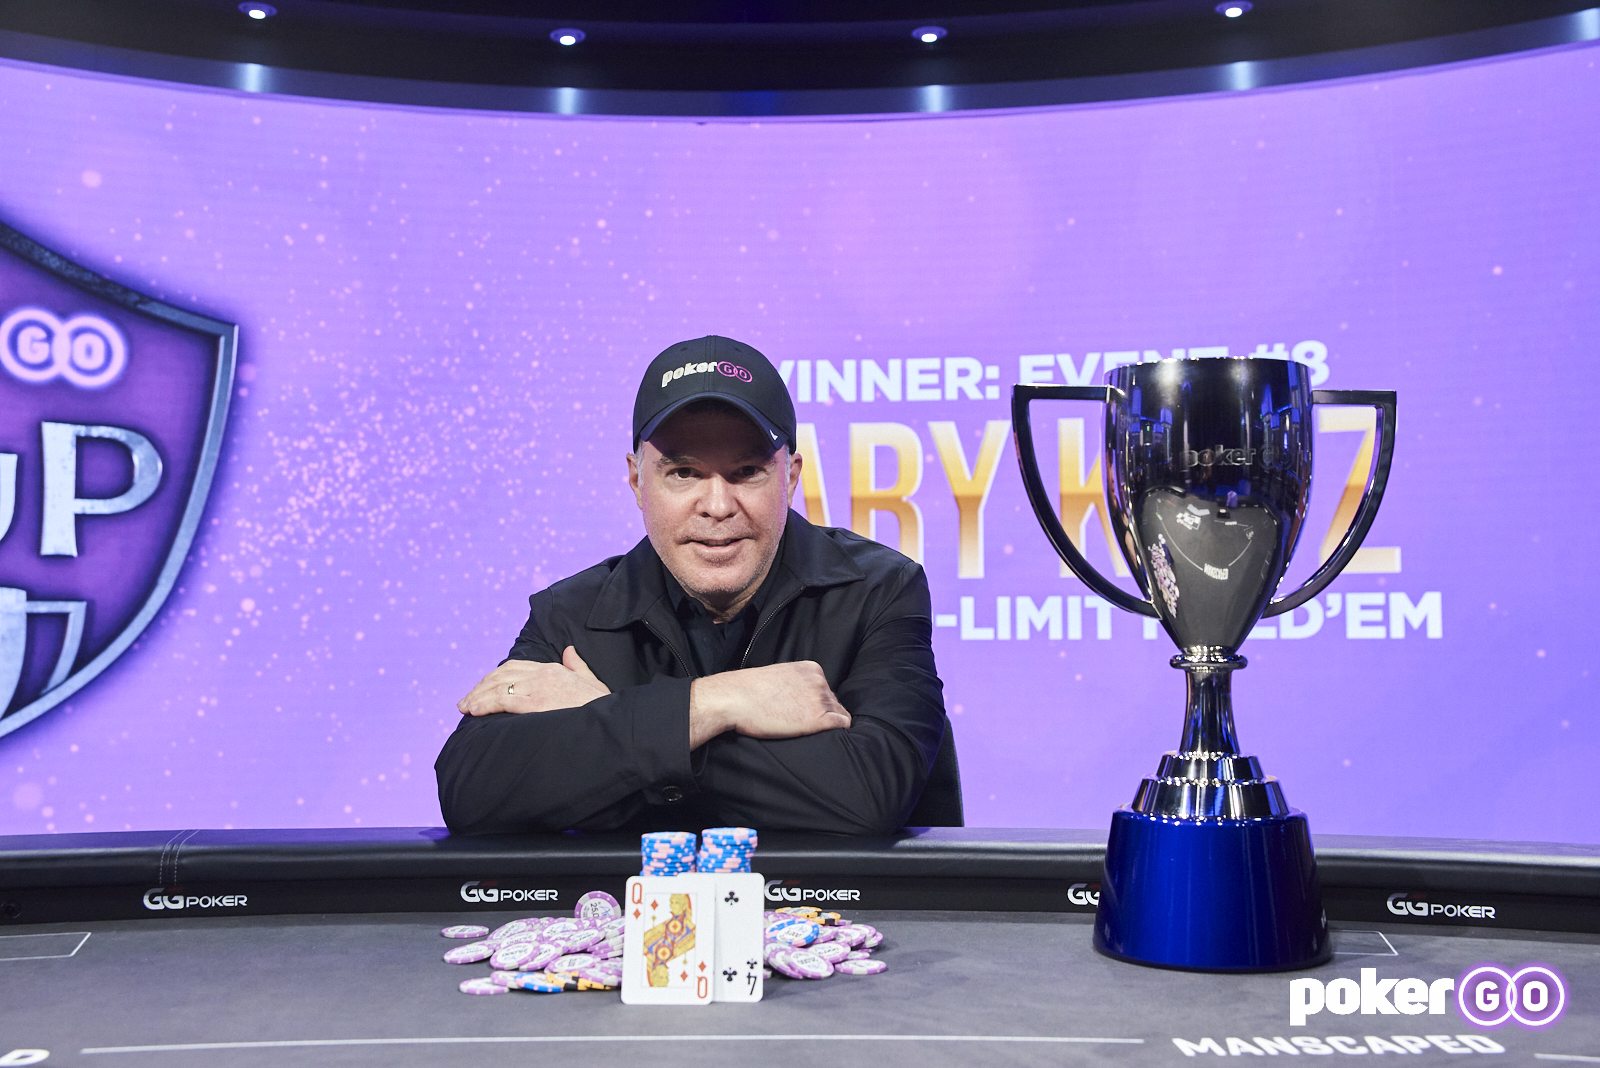 Cary Katz Wins Final Event of 2021 PokerGO Cup